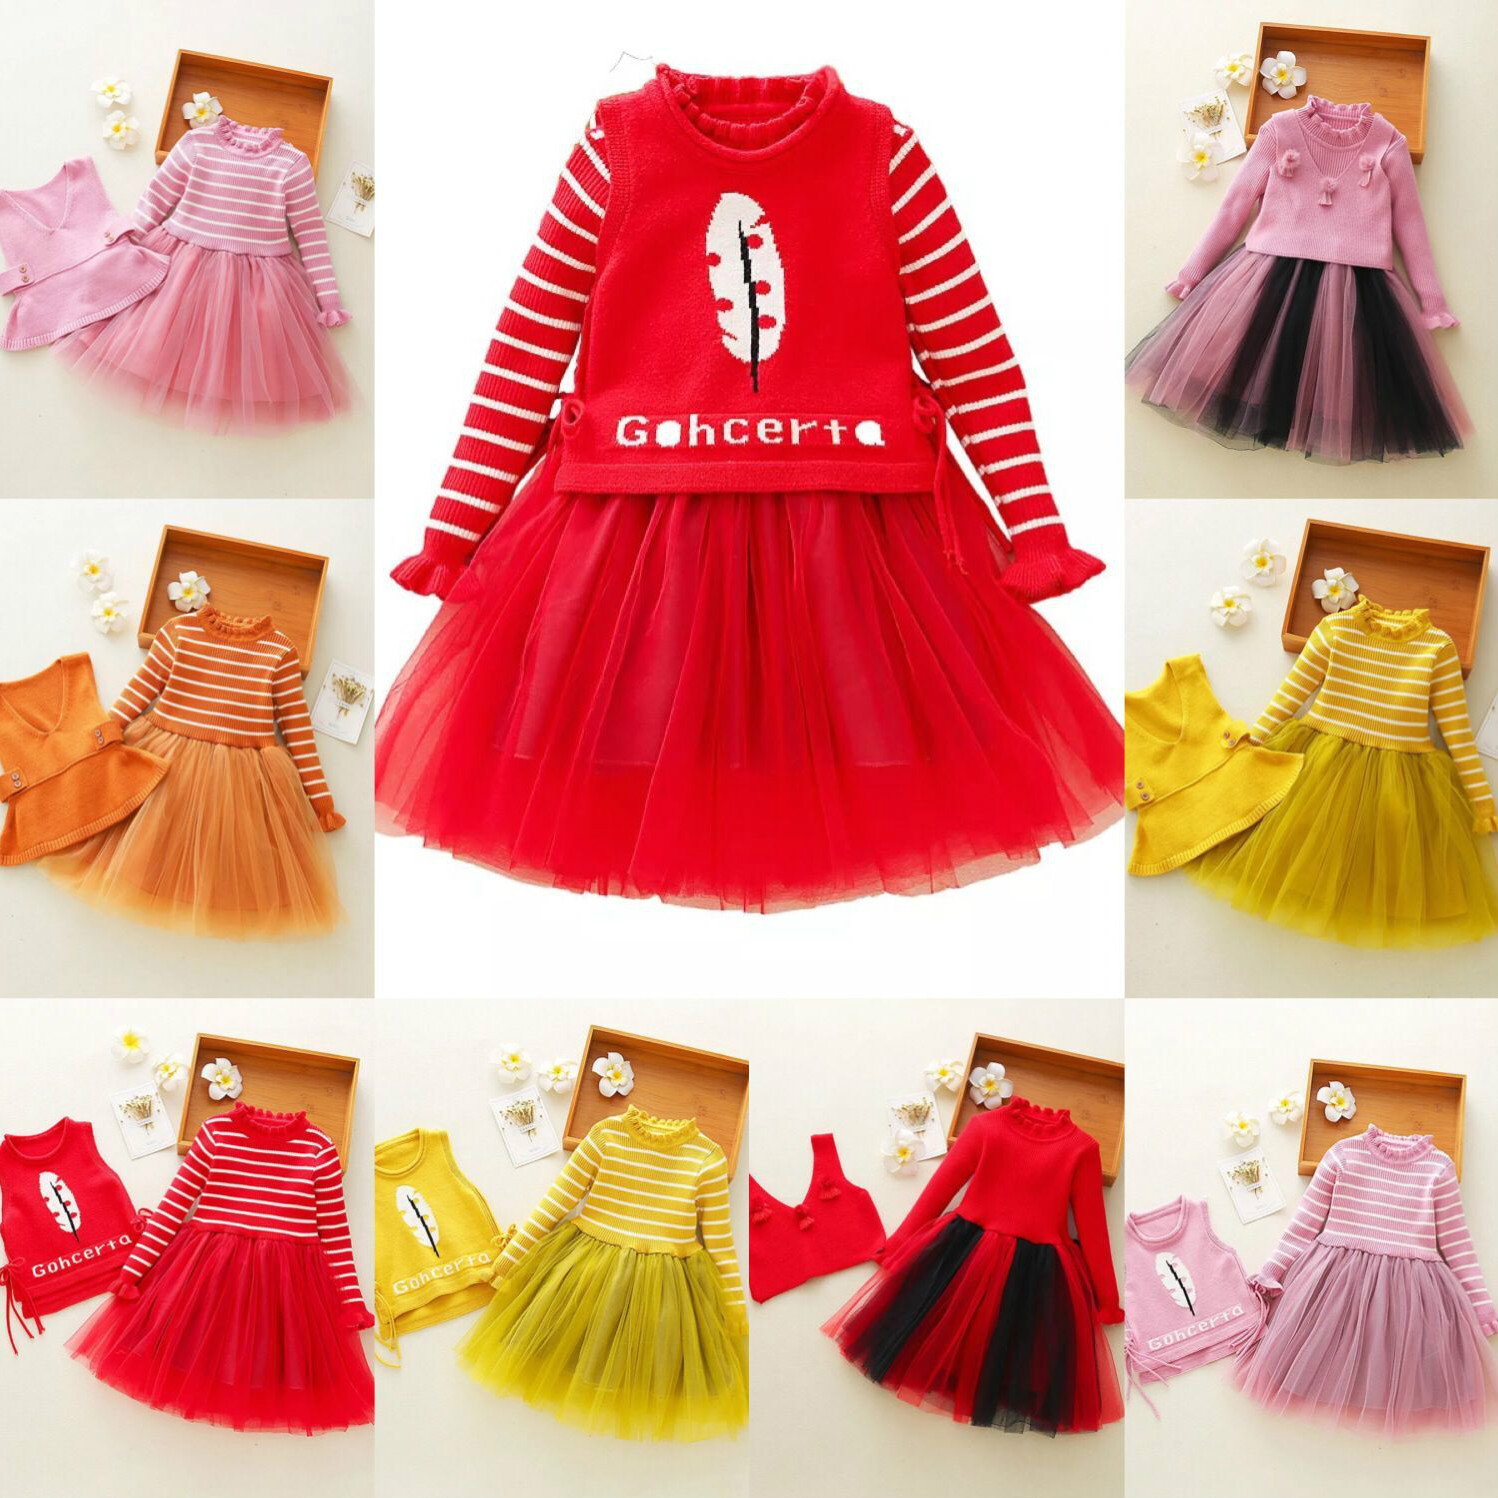 New Children Autumn Winter Dress Baby Girls Striped Long Sleeve Dresses Knitted Vest+tutu Dress 2pcs Clothes for 3-11Yrs CA3771 autumn winter women knitted dresses new fashion sheath bodycon pencil dress long sleeve sexy v neck solid slim knee length dress